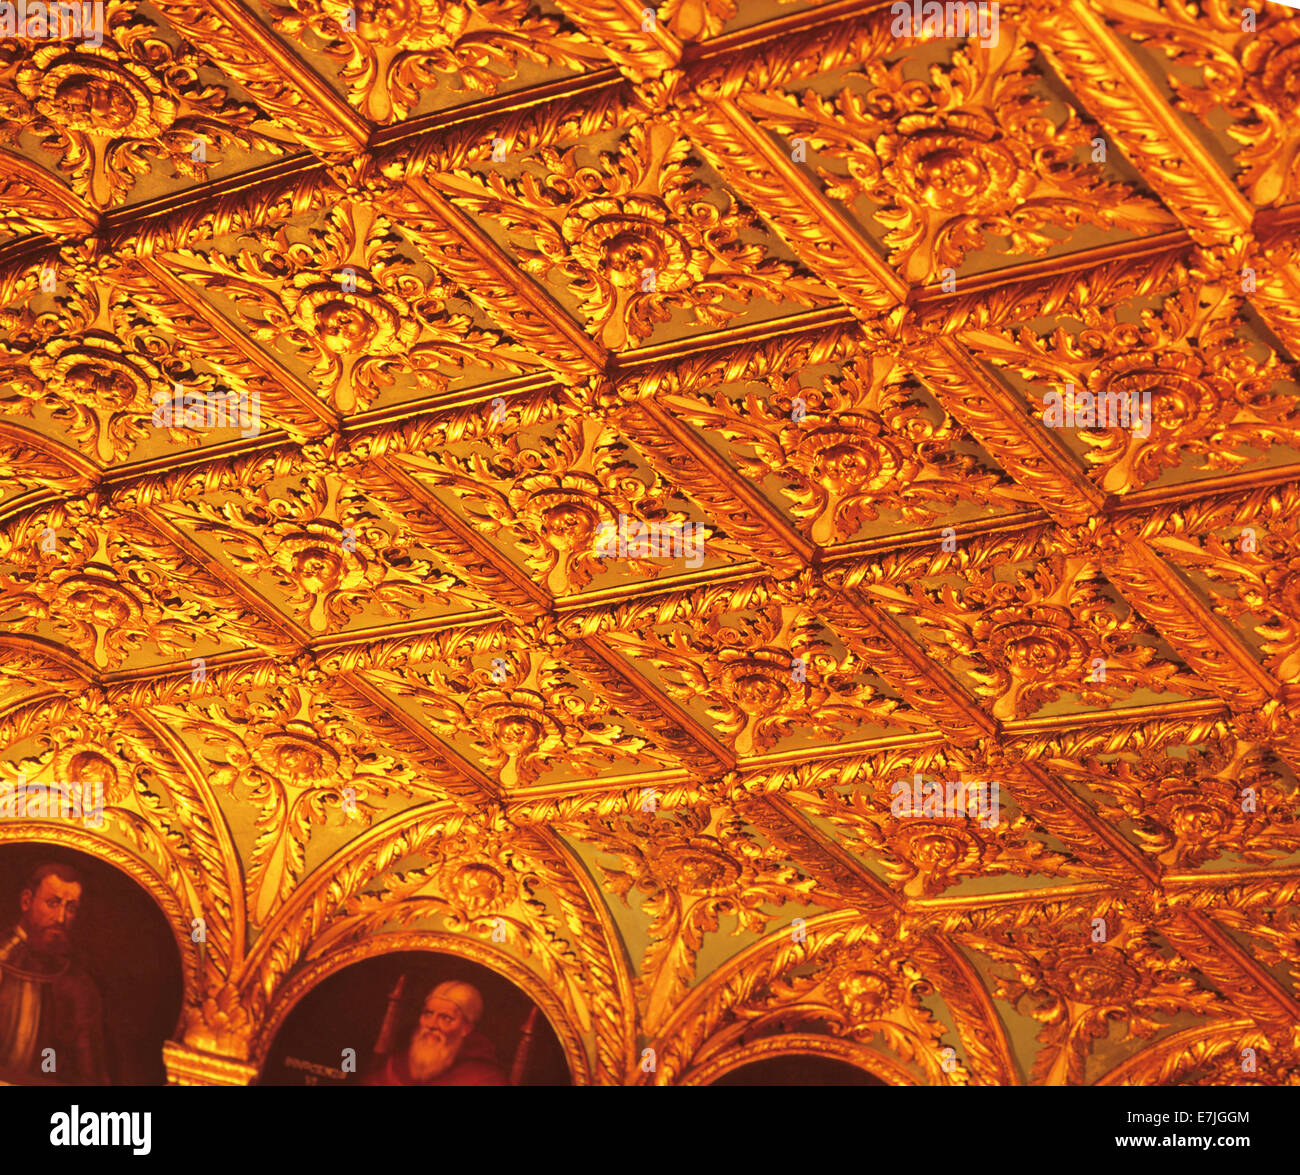 Ceiling, Meeting Room, Breakers Hotel, West Palm Beach, Florida - Stock Image